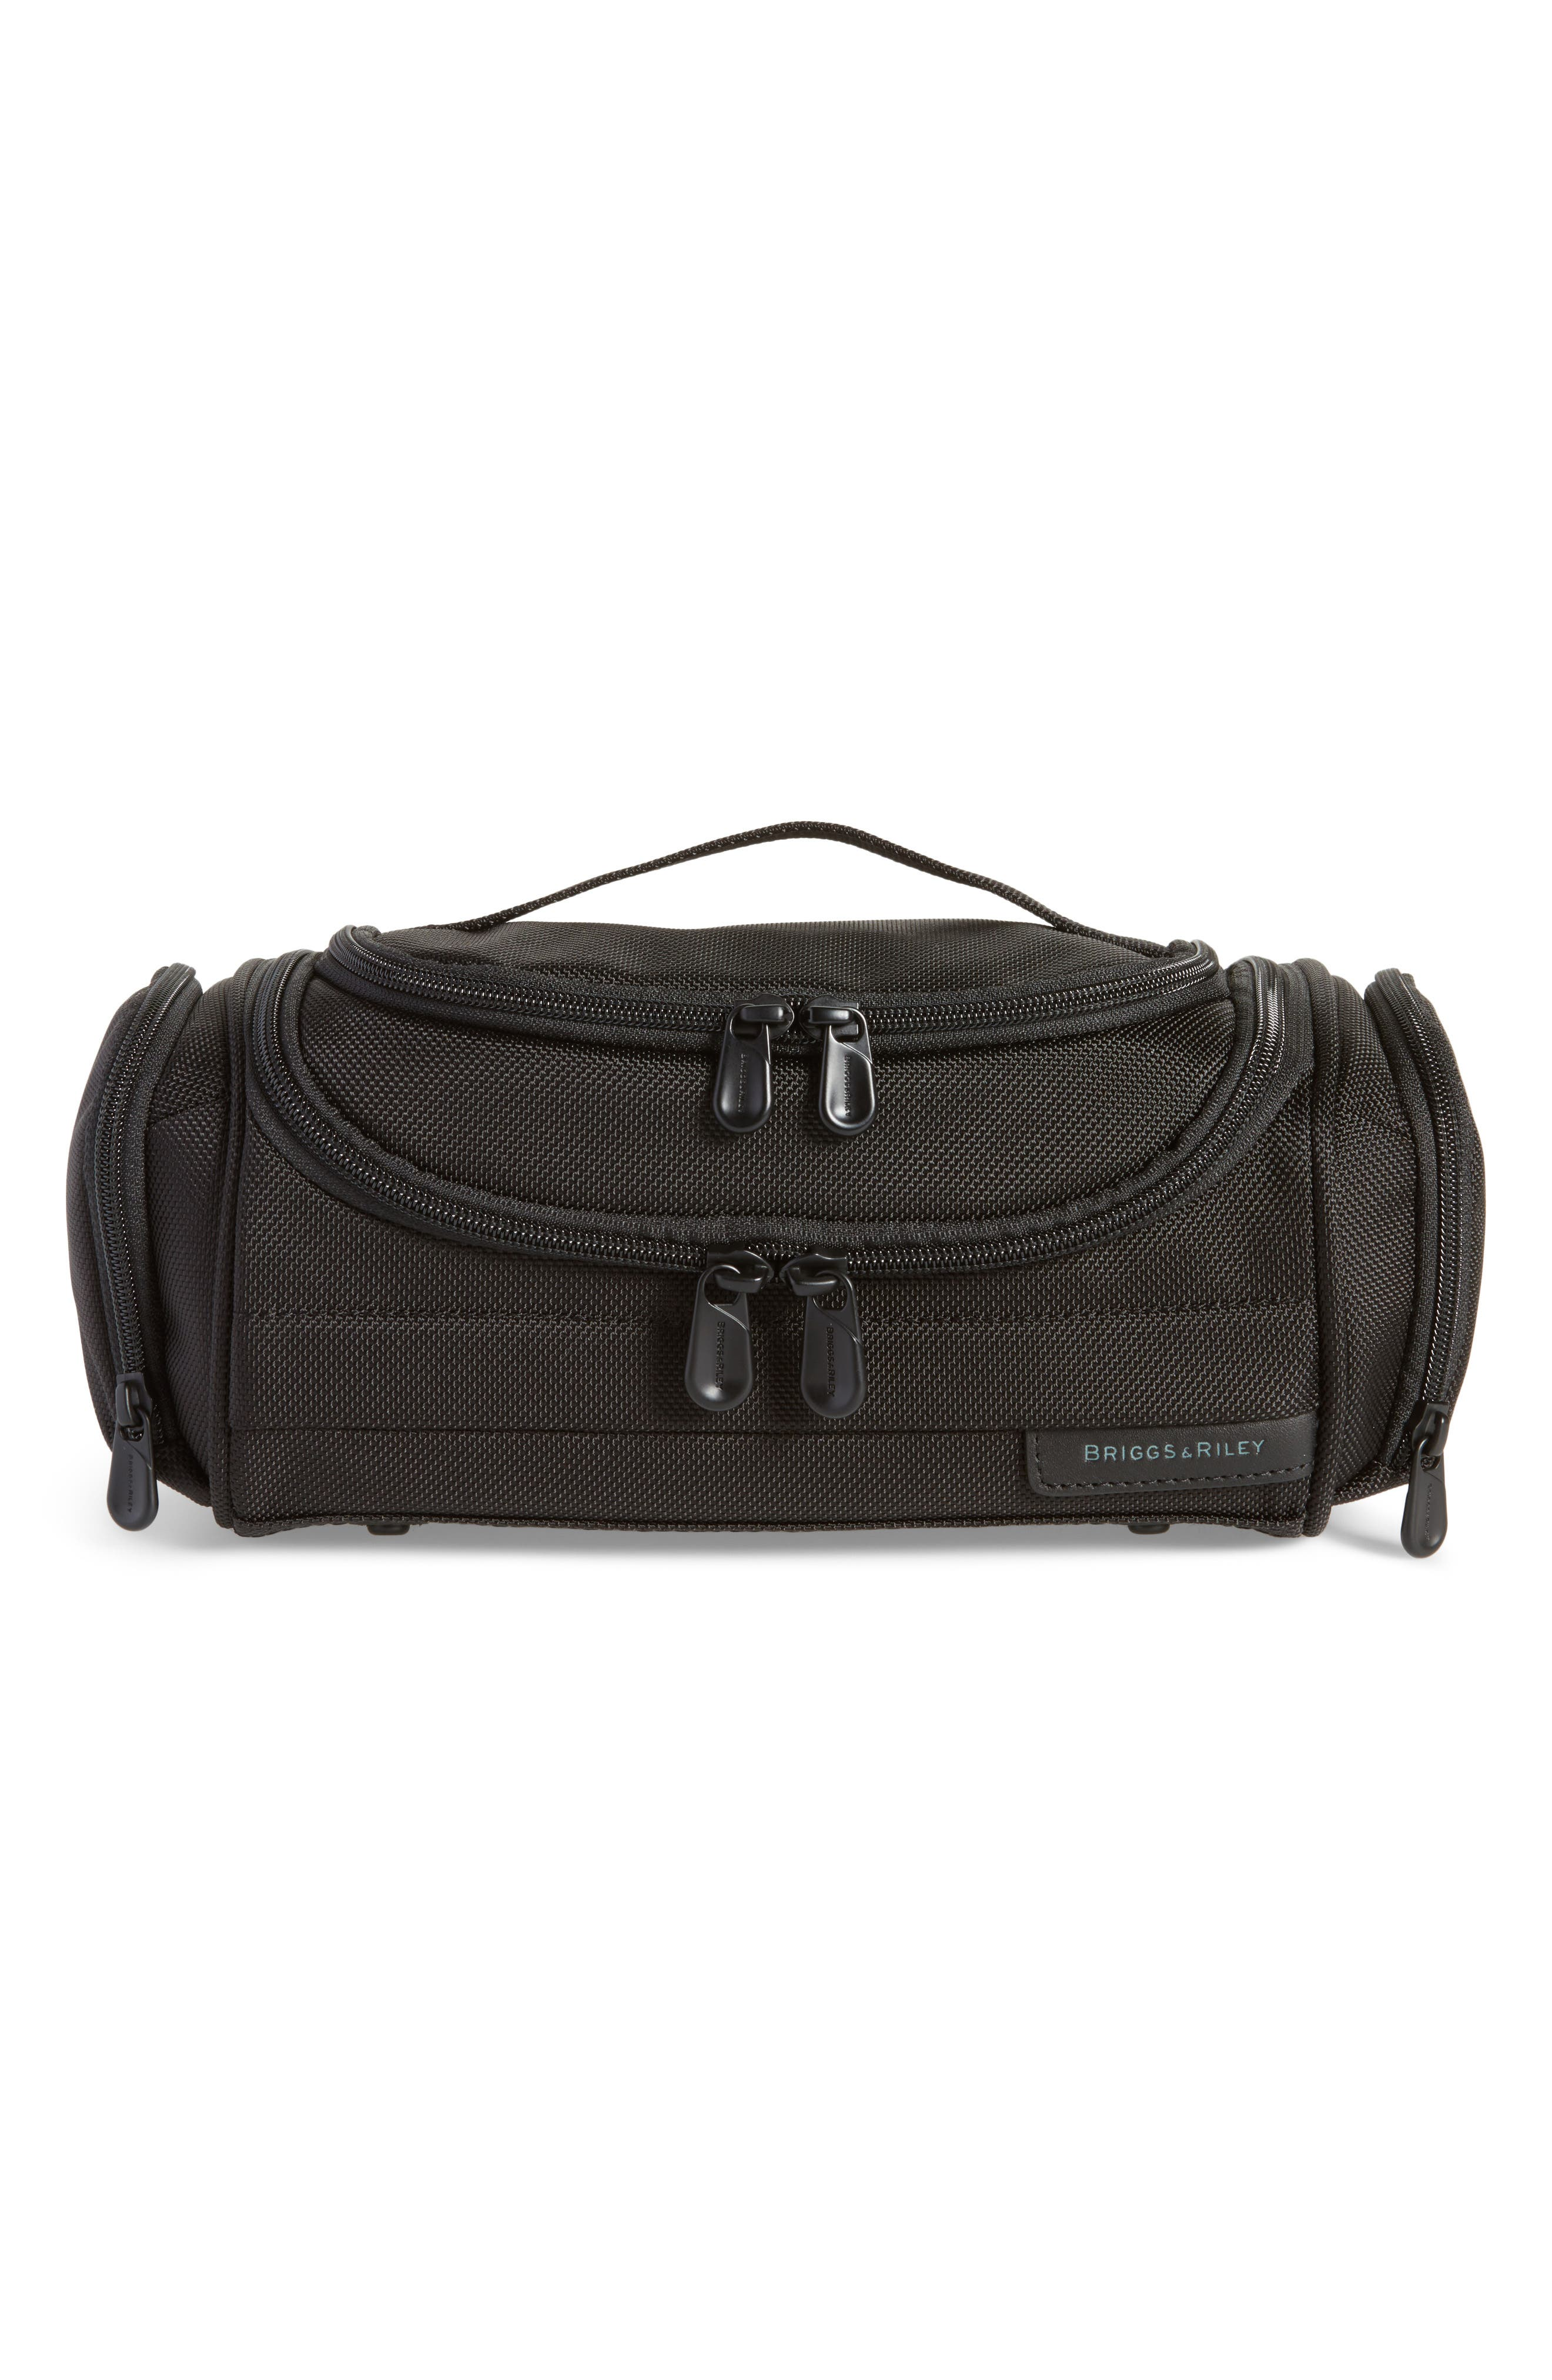 Alternate Image 1 Selected - Briggs & Riley Baseline - Executive Toiletry Kit